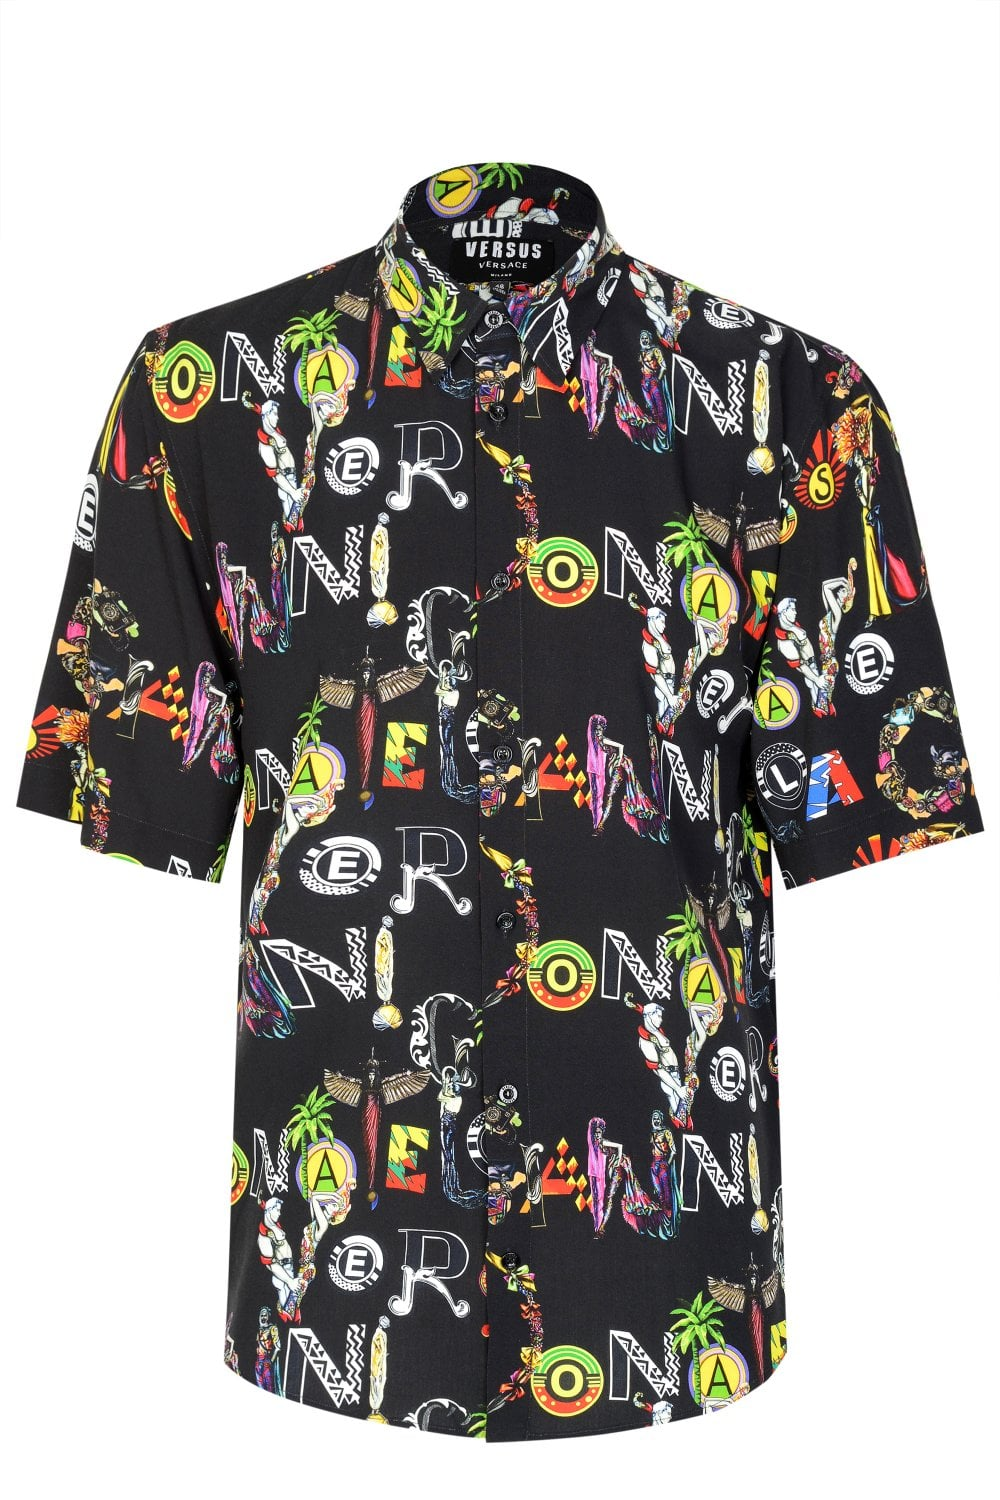 4a8e4c991d VERSACE Versus Versace Gianni All Over Print Shirt - Shirts from ...